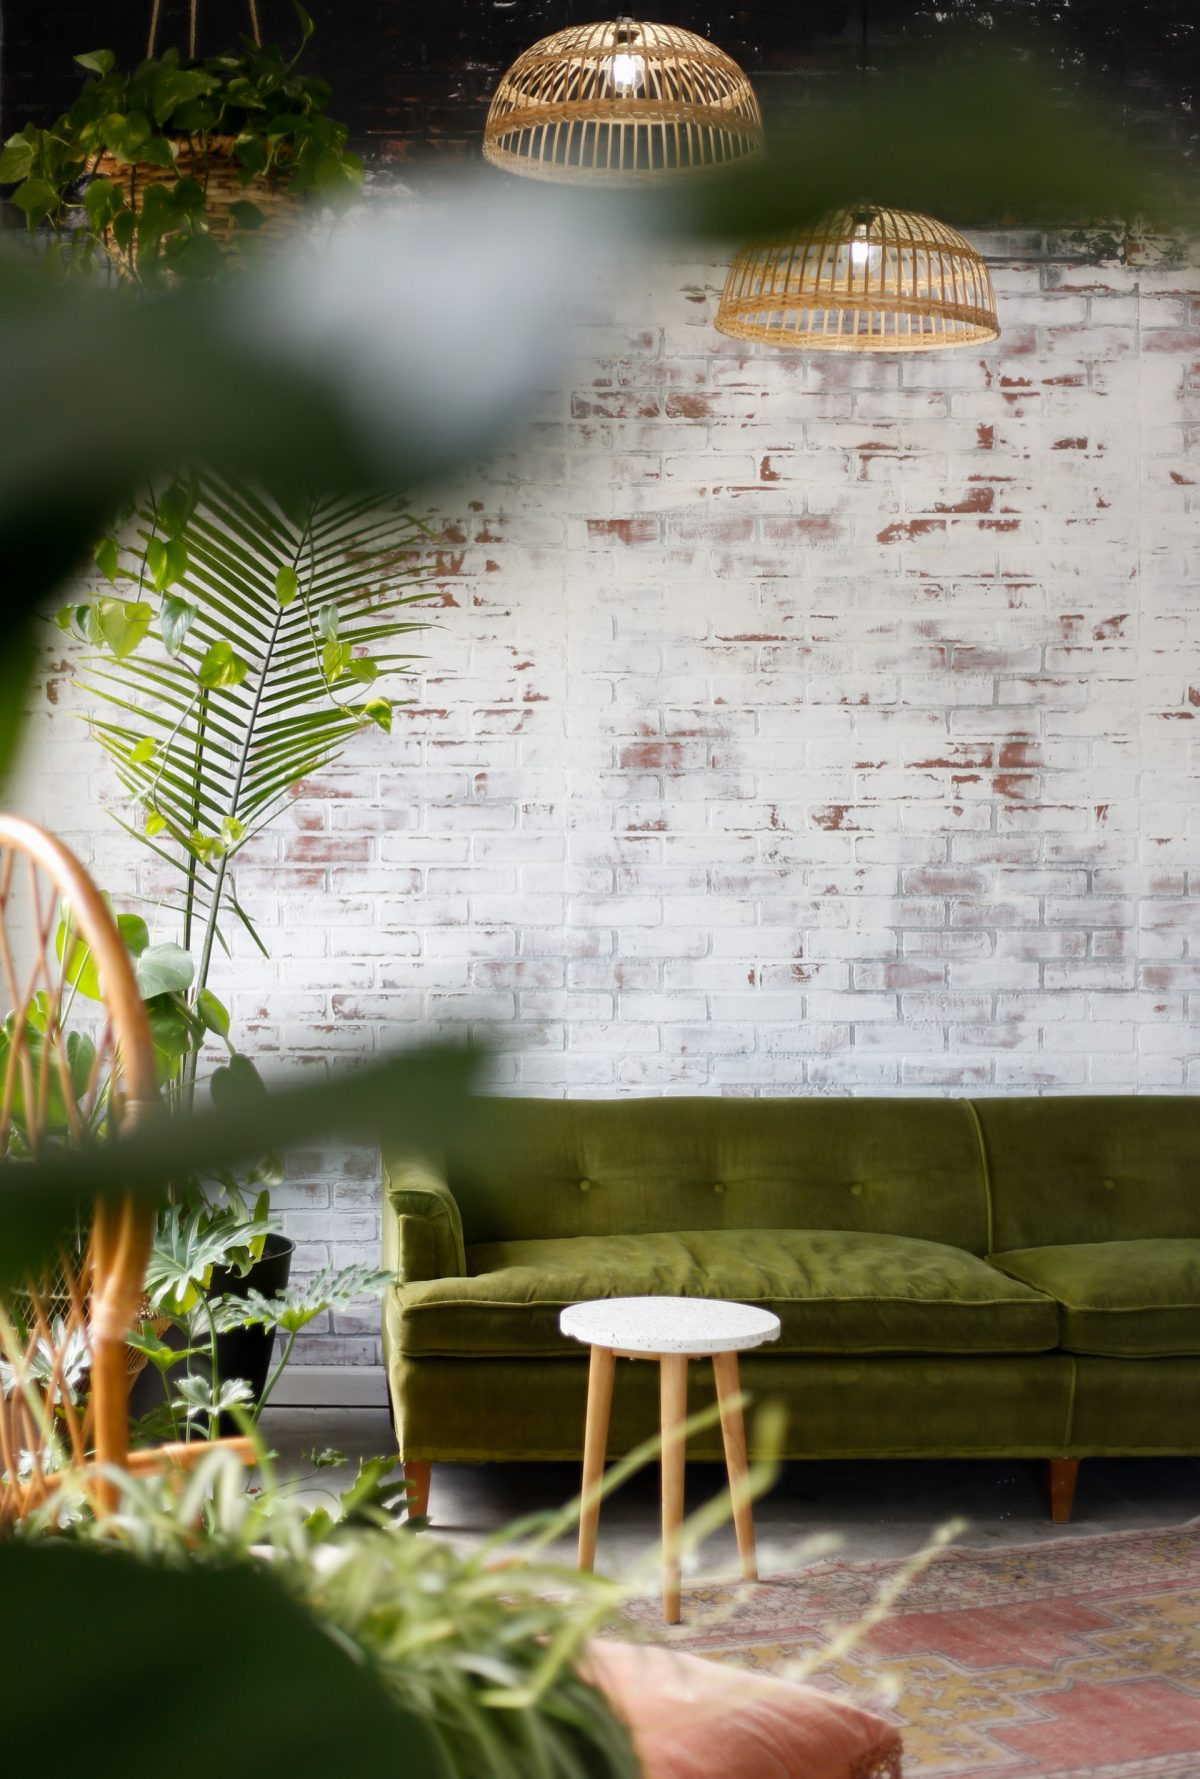 Eco-Friendly Ideas For Home Renovations - We Fix It Services